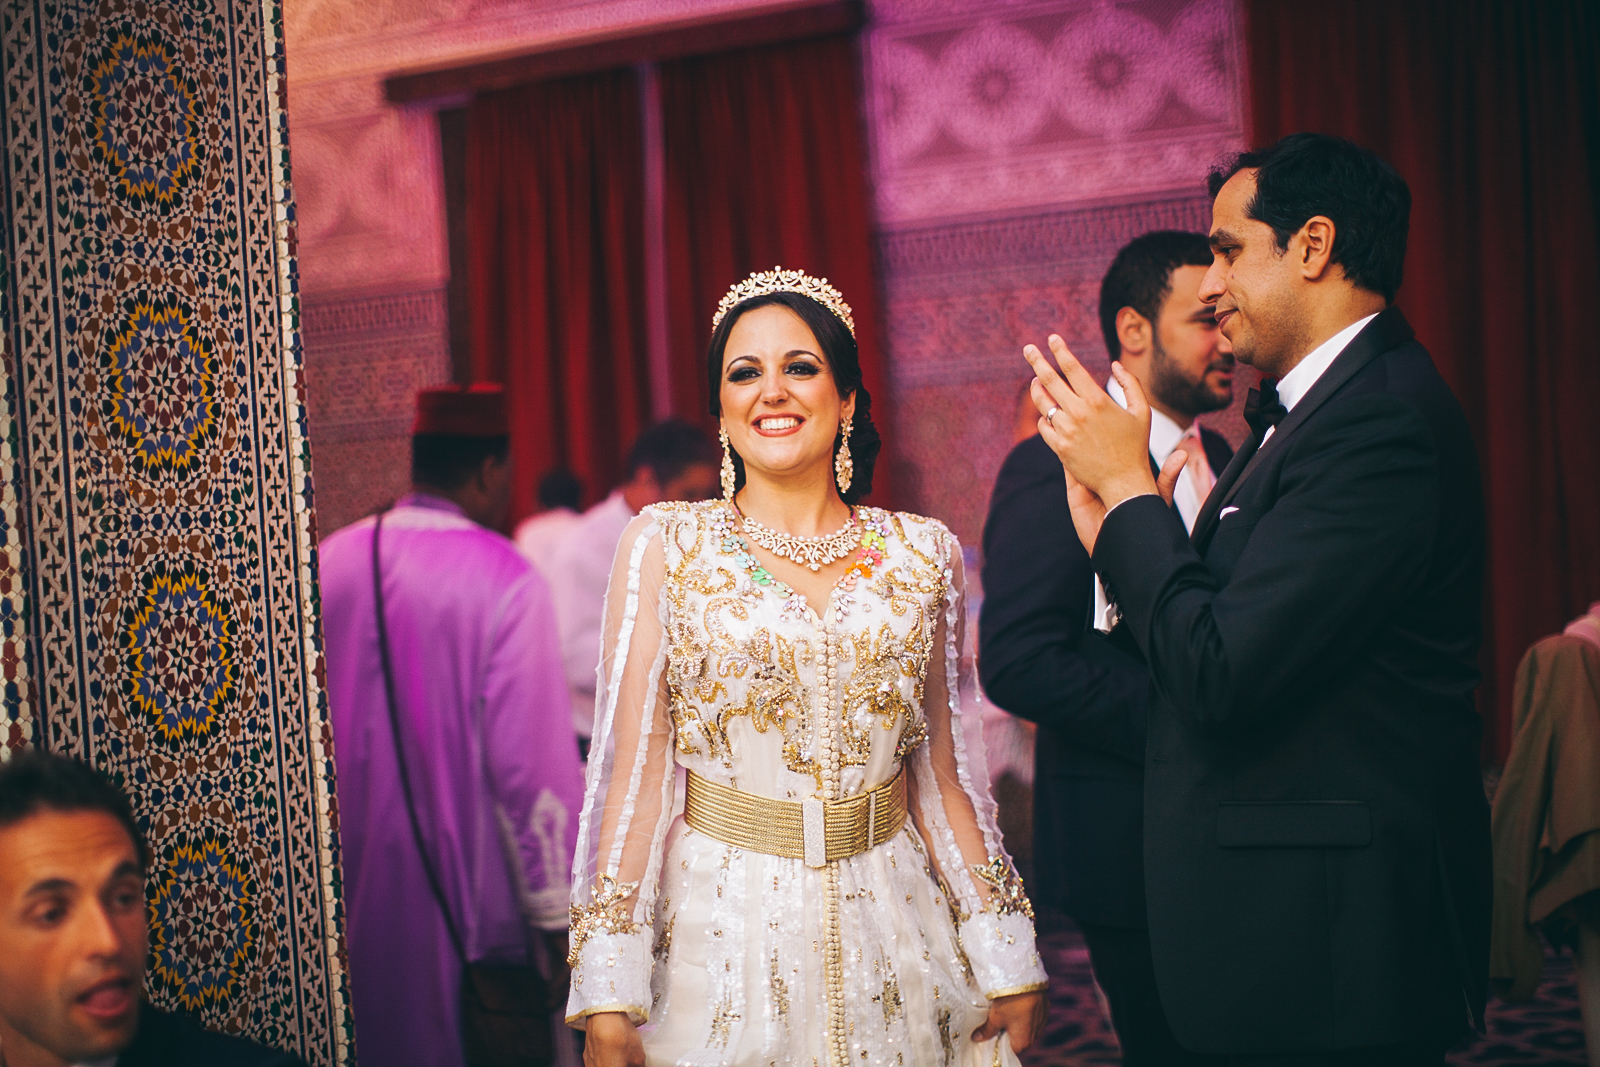 traditional_moroccan_wedding_photographry_casablanca_morocco_houda_vivek_ebony_siovhan_bokeh_photography_146.jpg